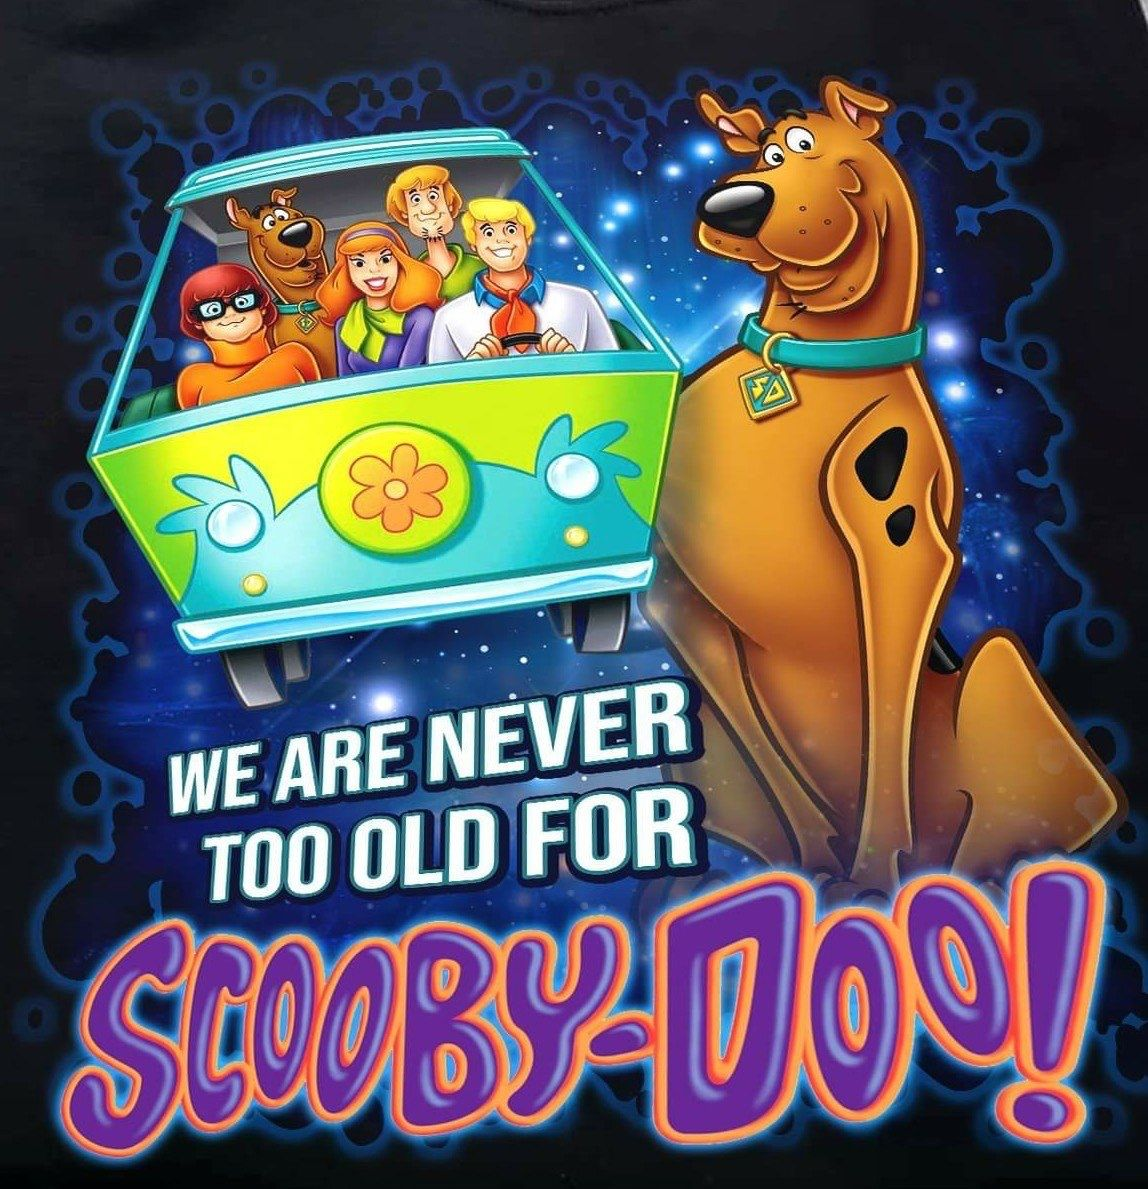 Pin By Tina Cluff On Scooby Doo In